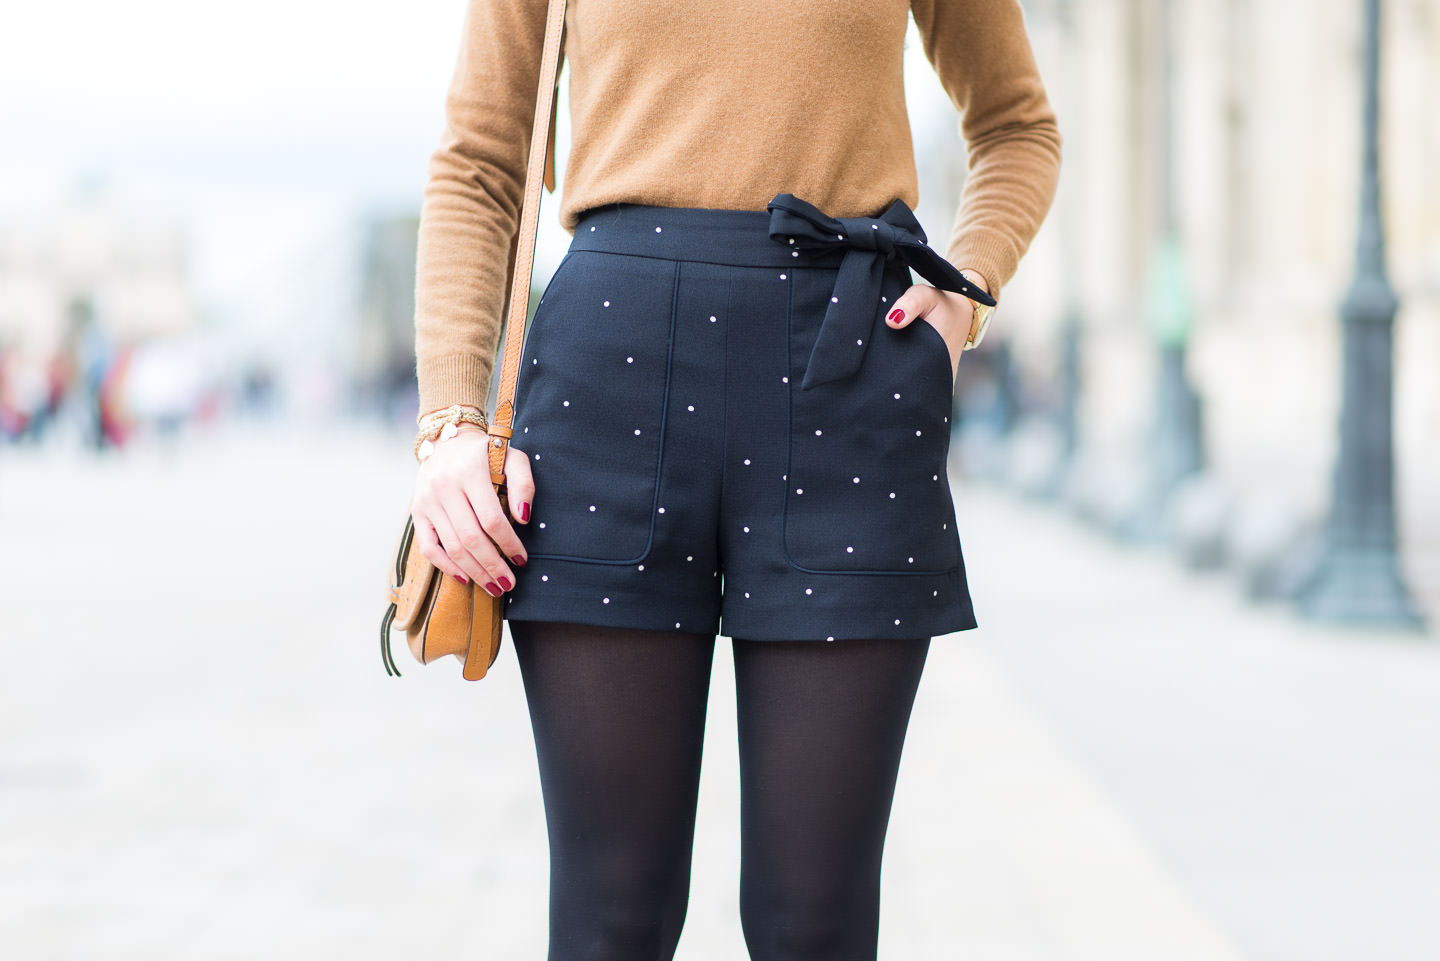 http://www.modeandthecity.net/wp-content/uploads/2015/09/Blog-Mode-And-The-City-Look-Le-short-à-pois-12.jpg